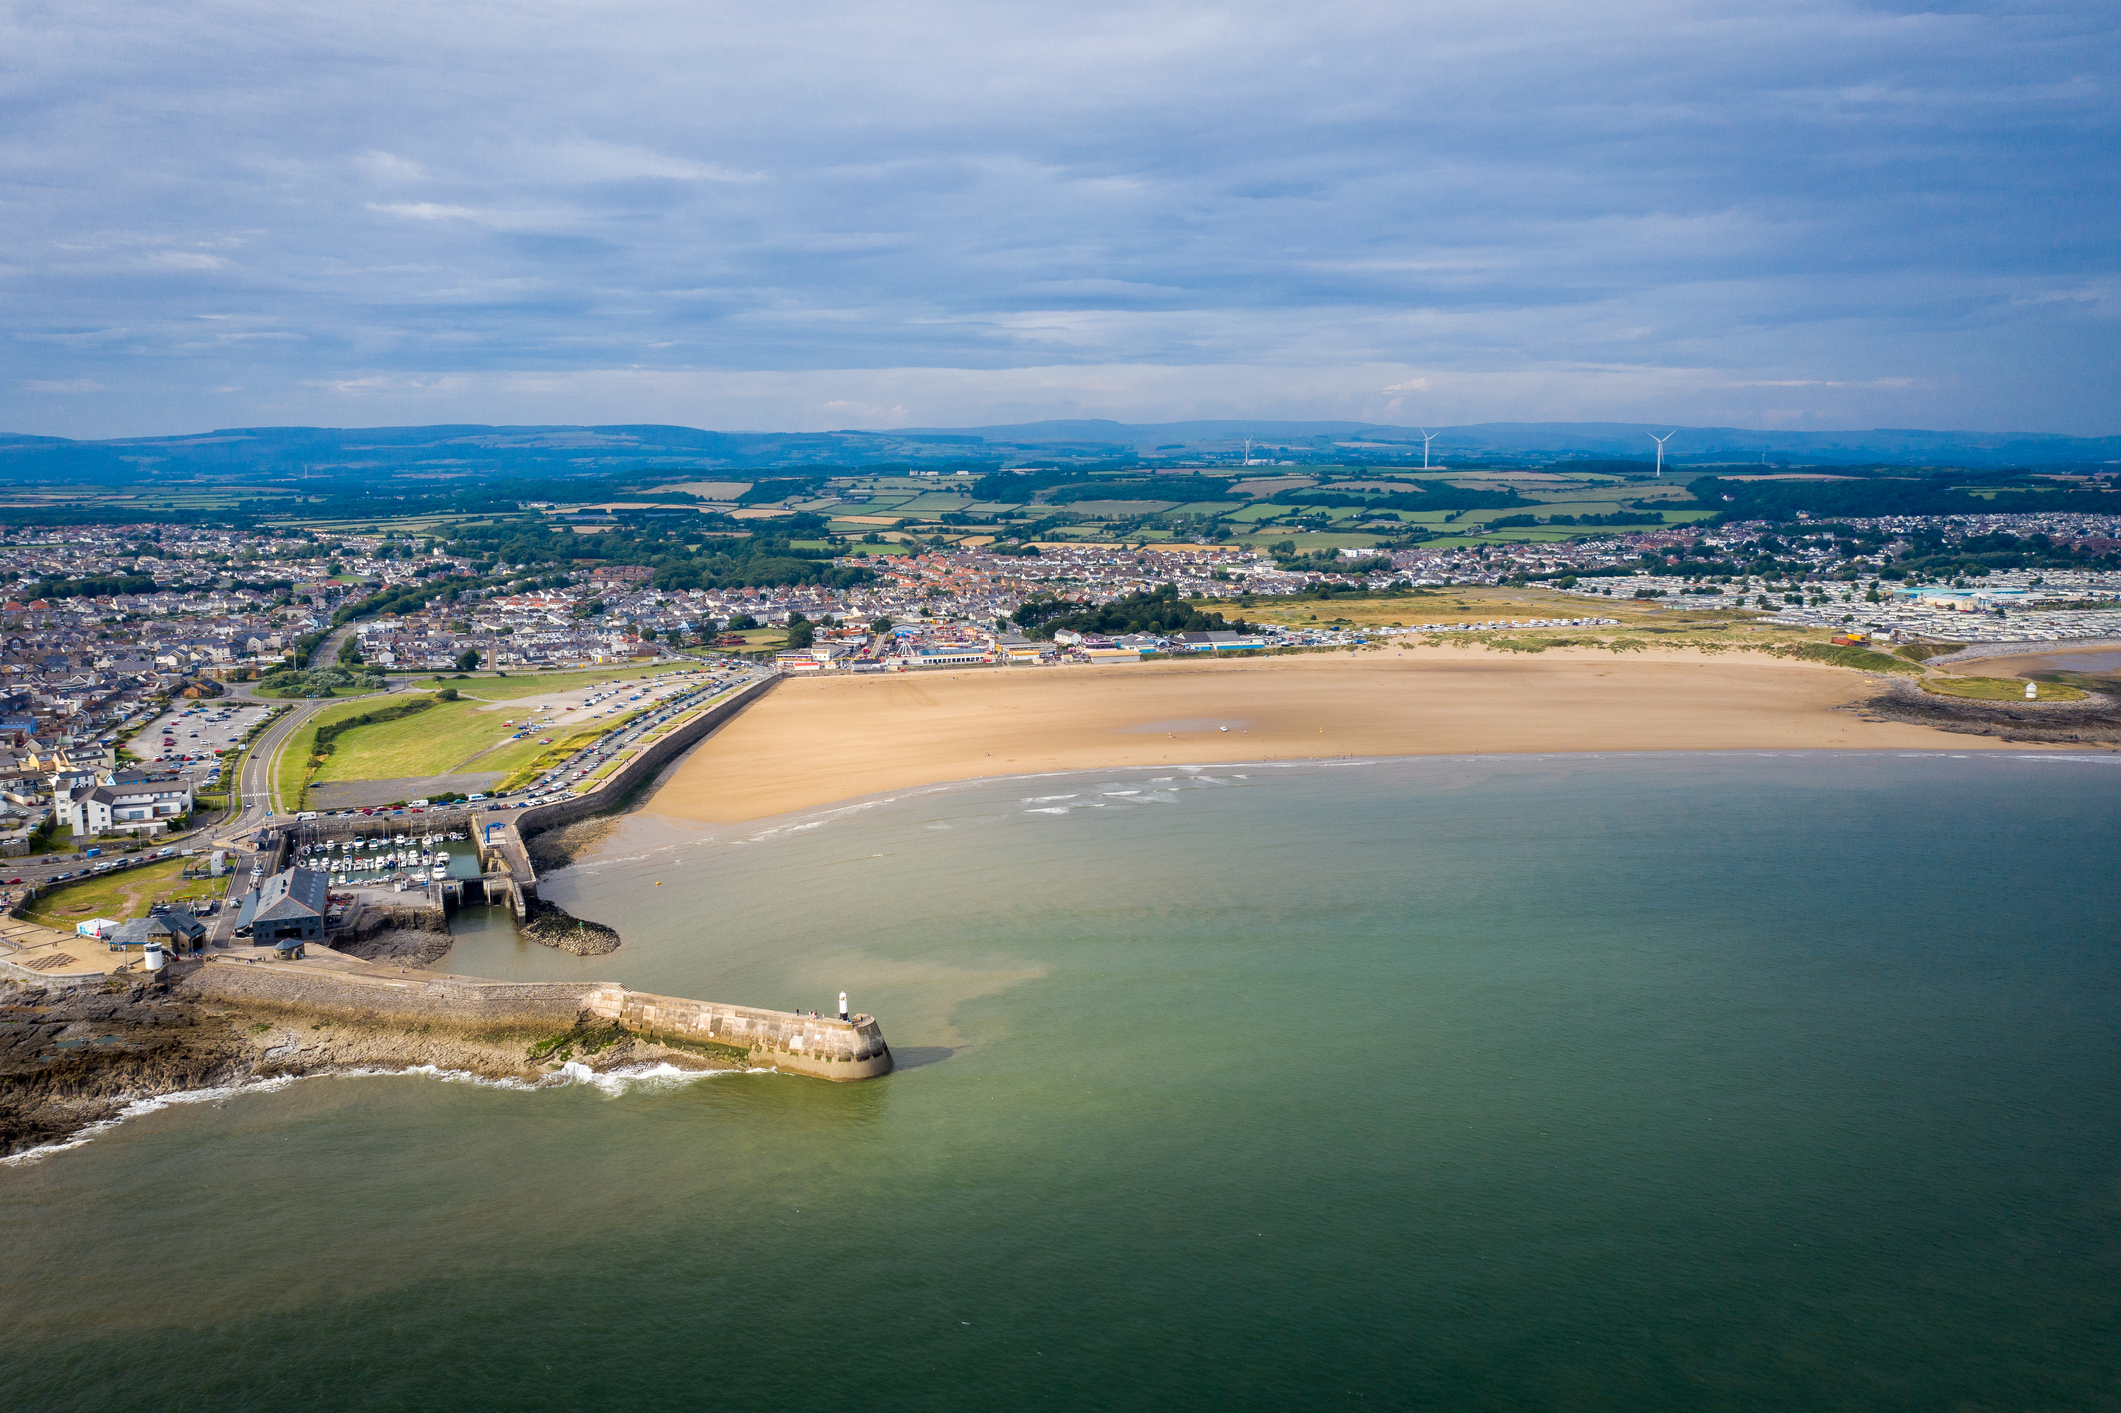 Aerial view of Porthcawl beach harbour